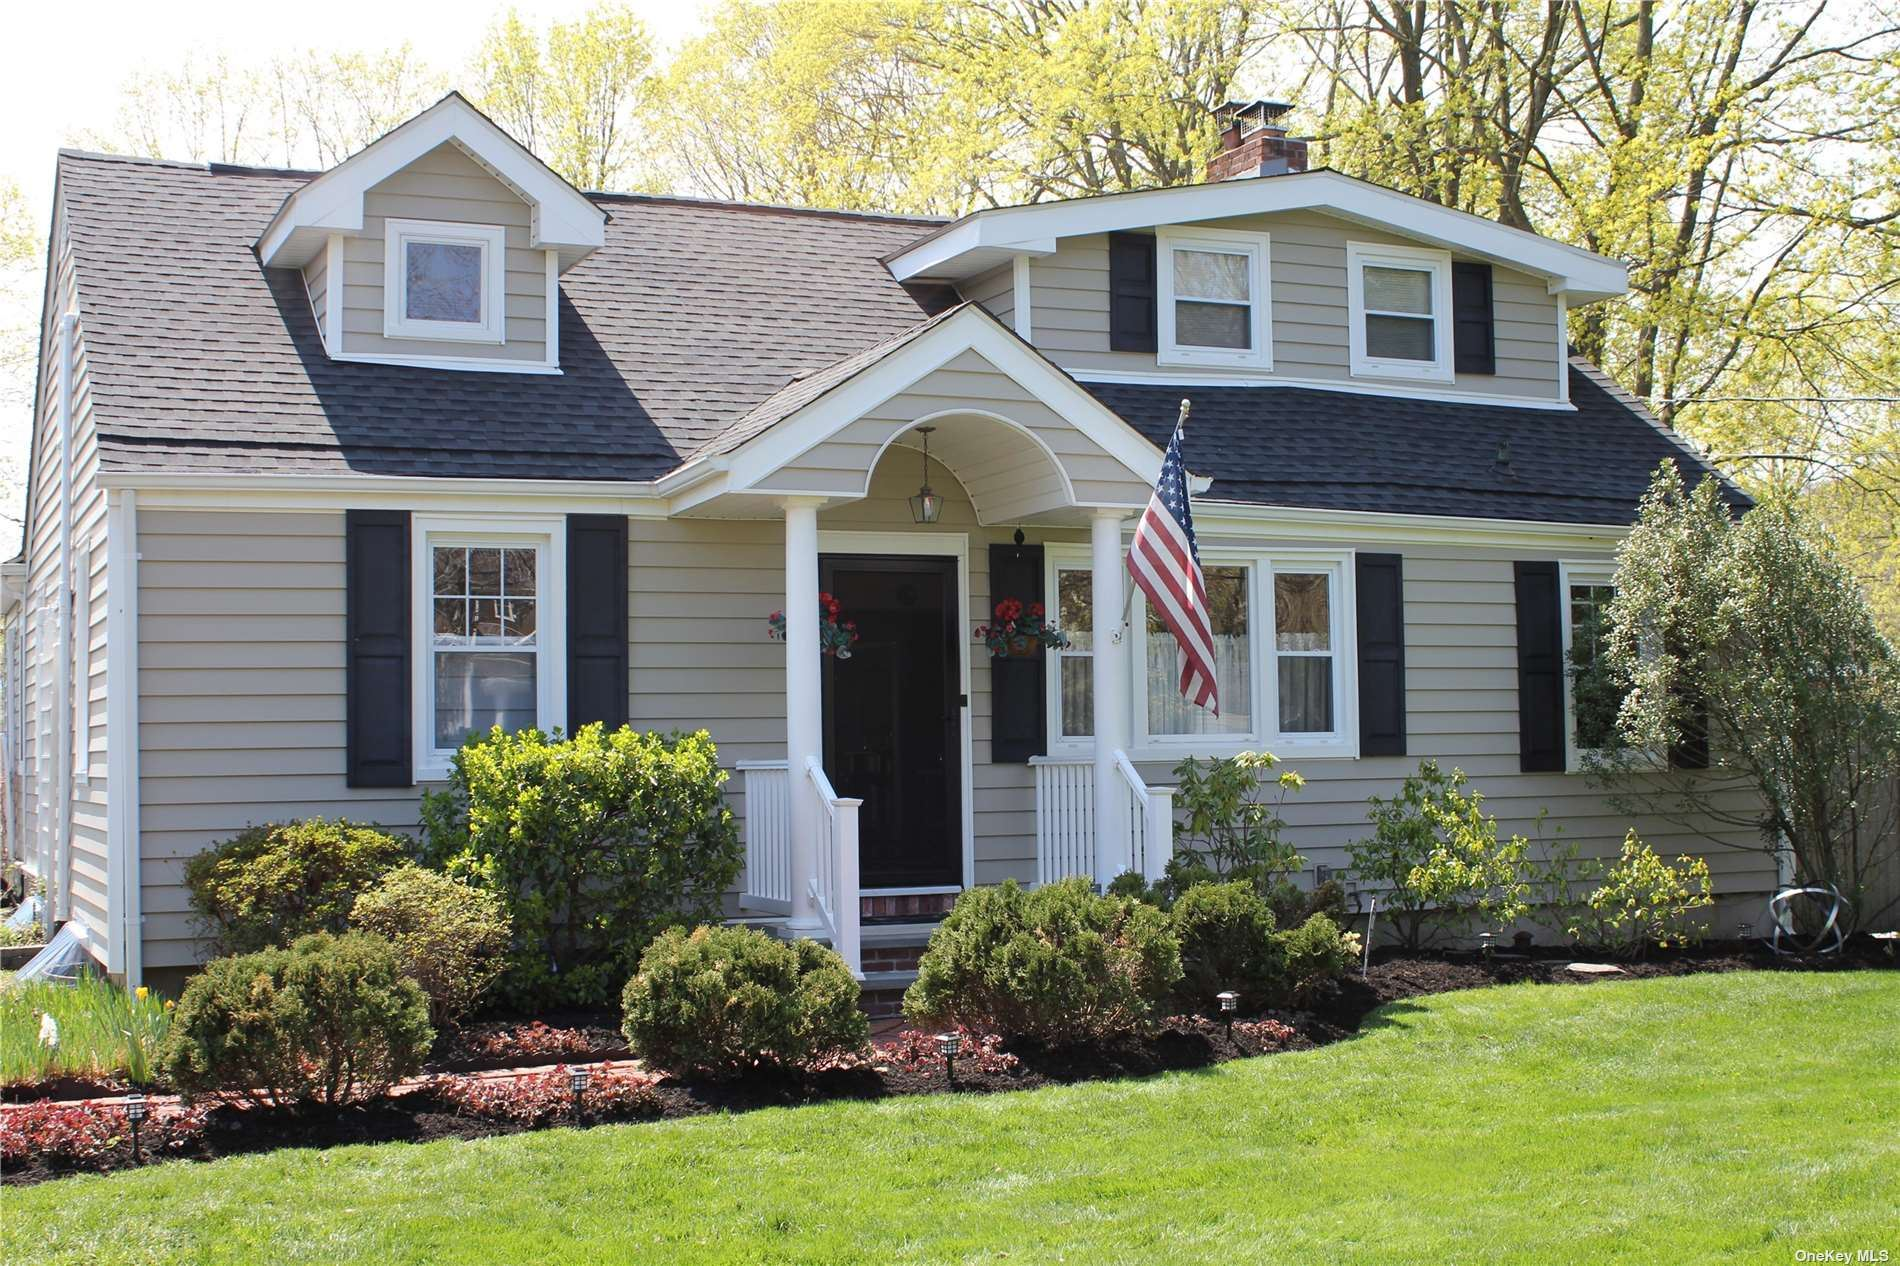 144 Old Country Road, Melville, NY 11747 - MLS#: 3306438